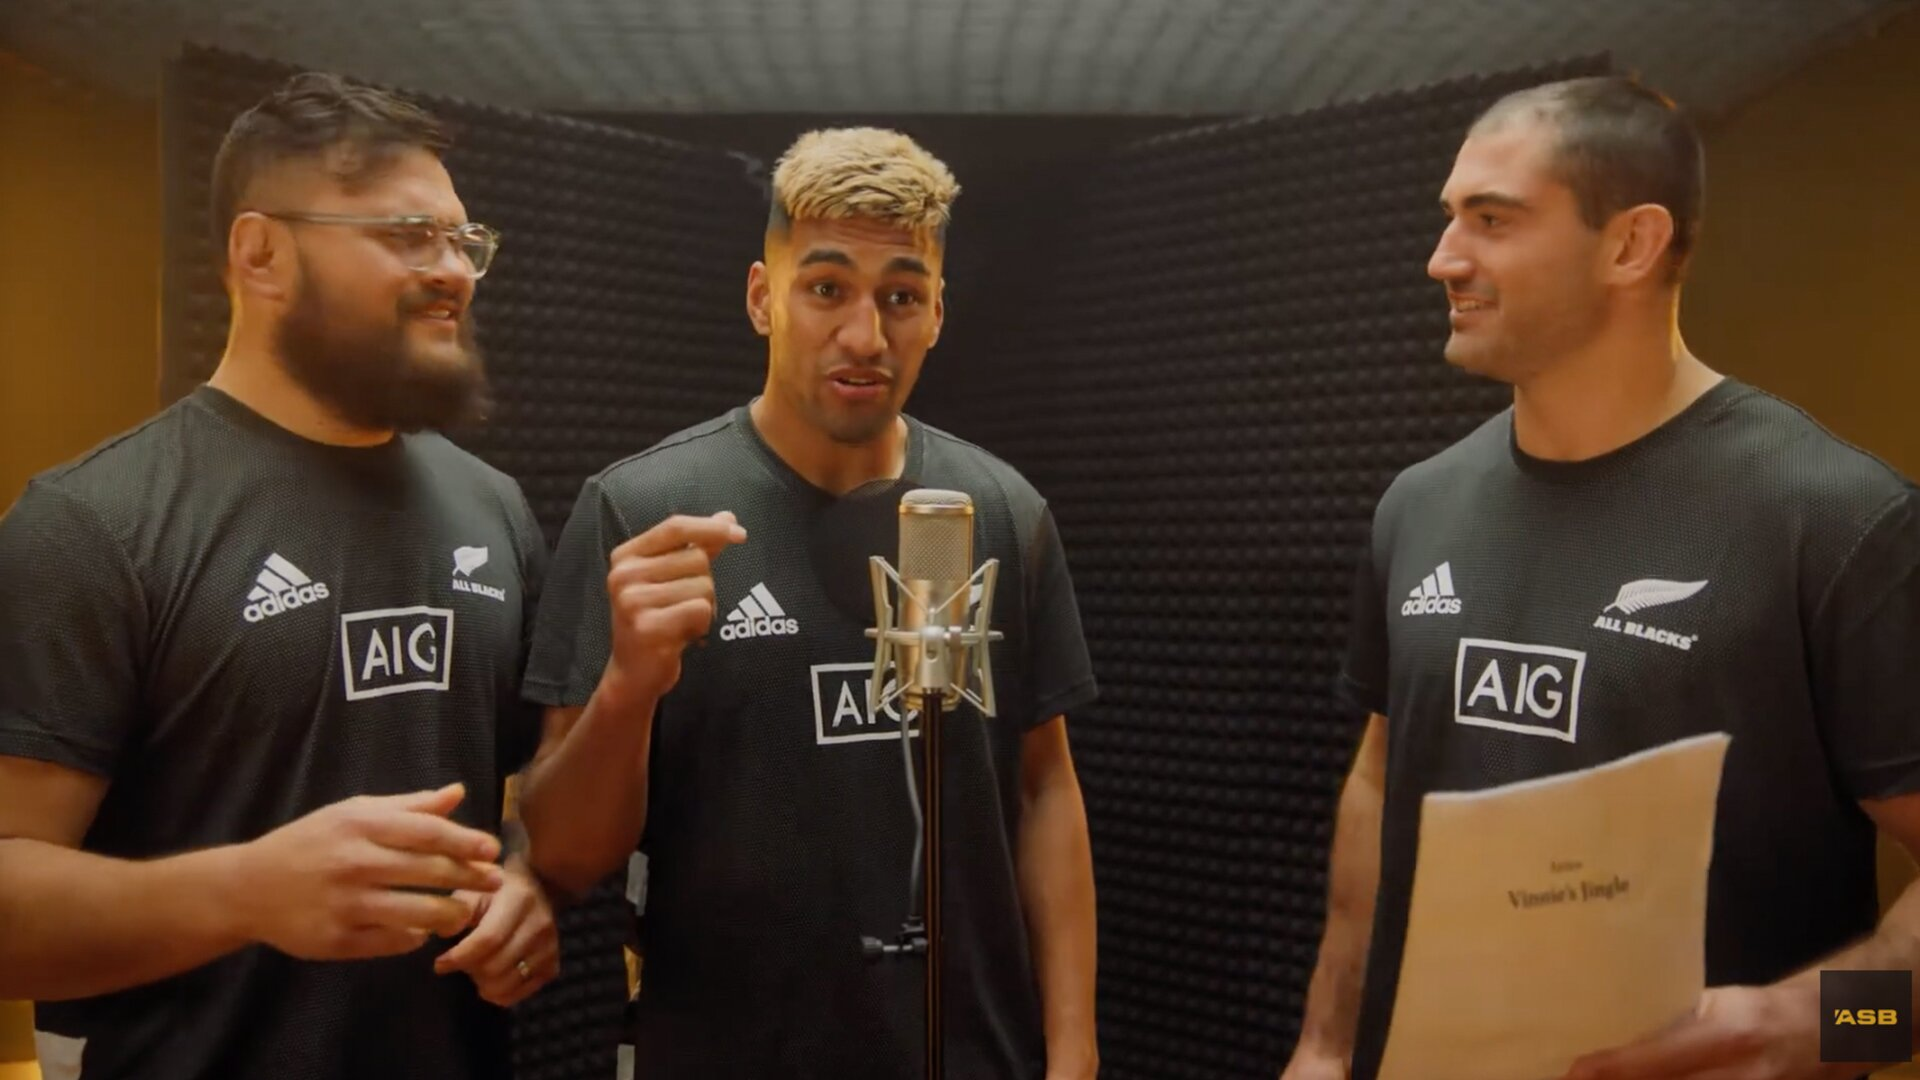 The All Blacks have just dropped one of the strangest TV ads ever